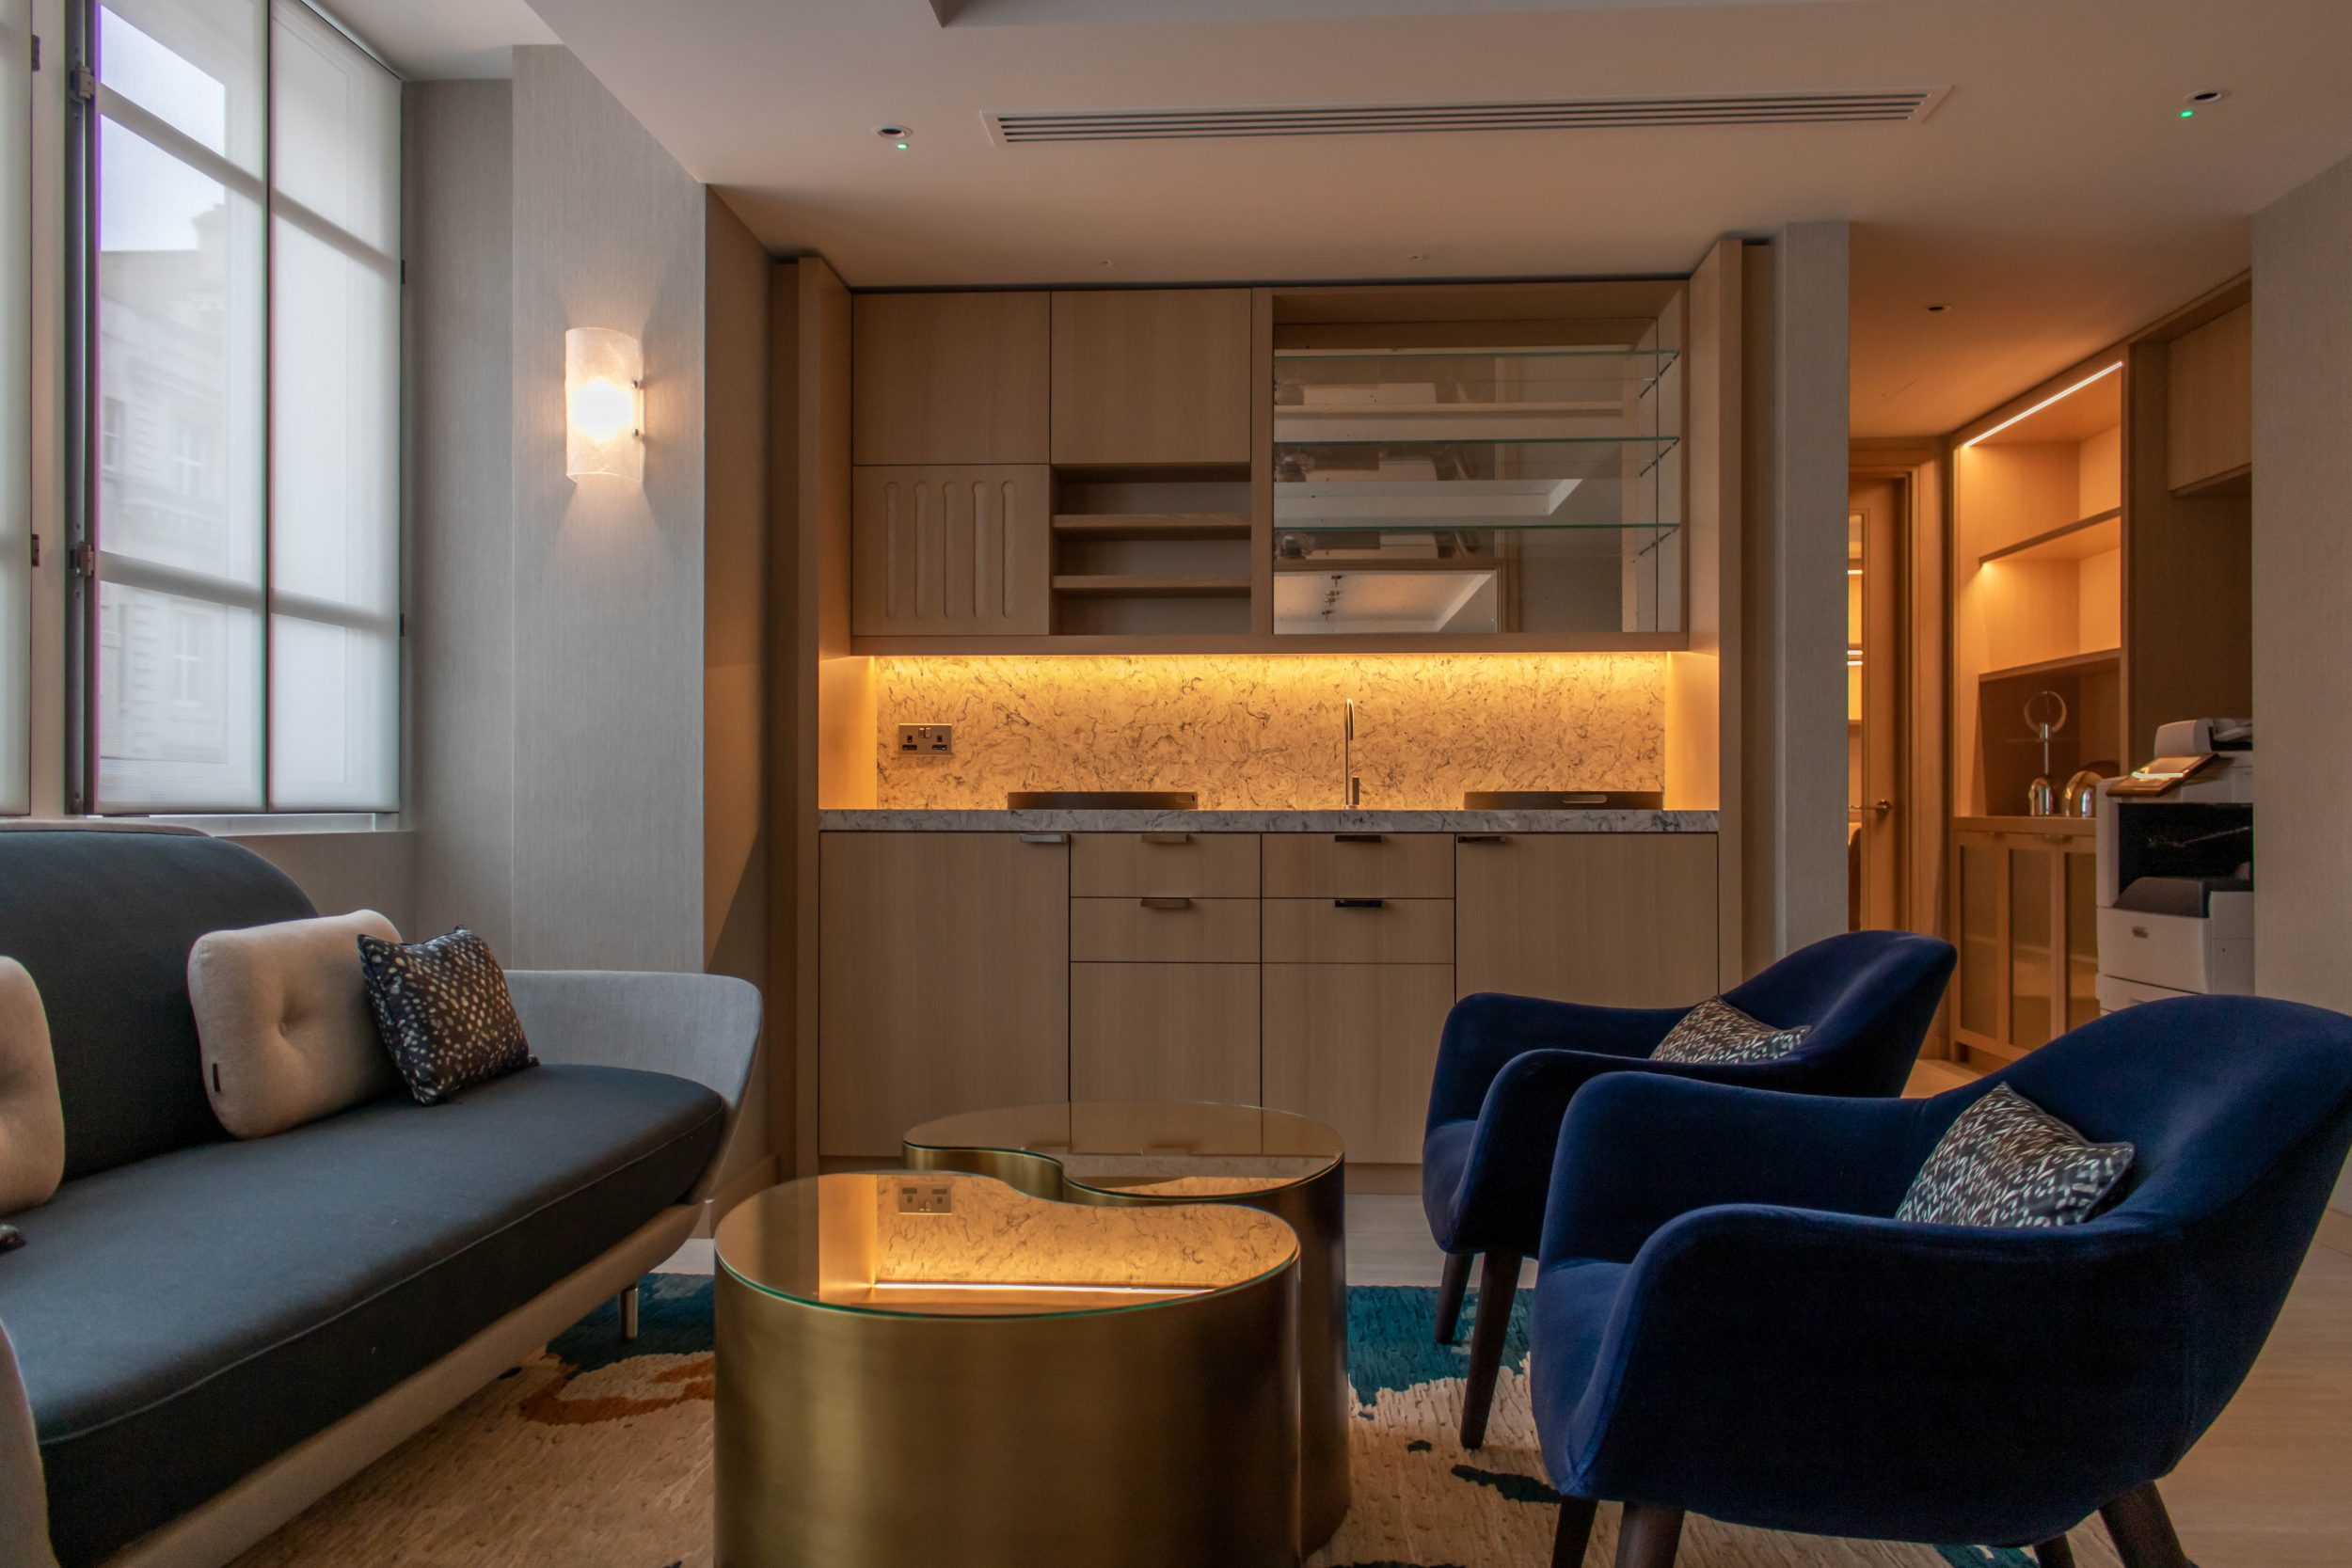 Kandd interior design with cabinetry installed